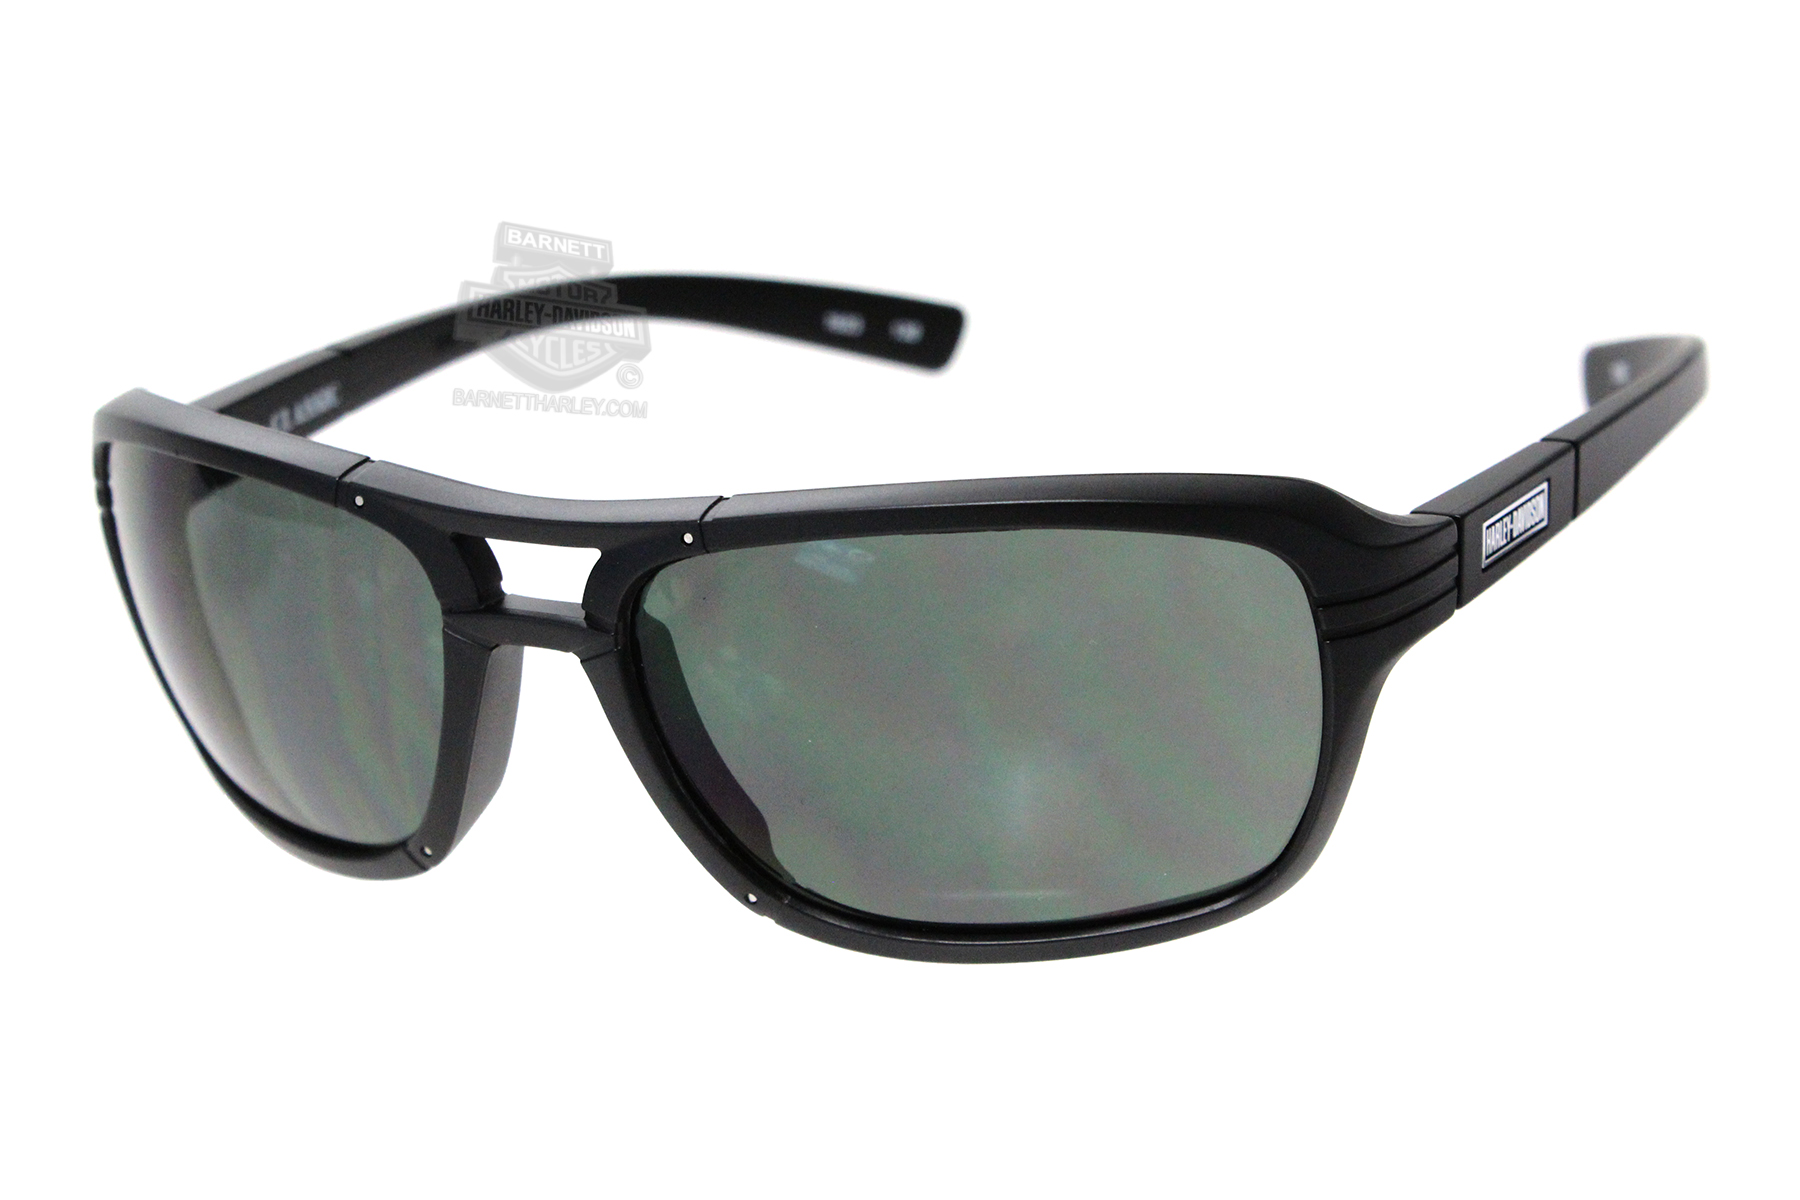 Harley-Davidson® HD Classic Smoke Green Lens in a Matte Black Frame Sunglasses by Wiley X®